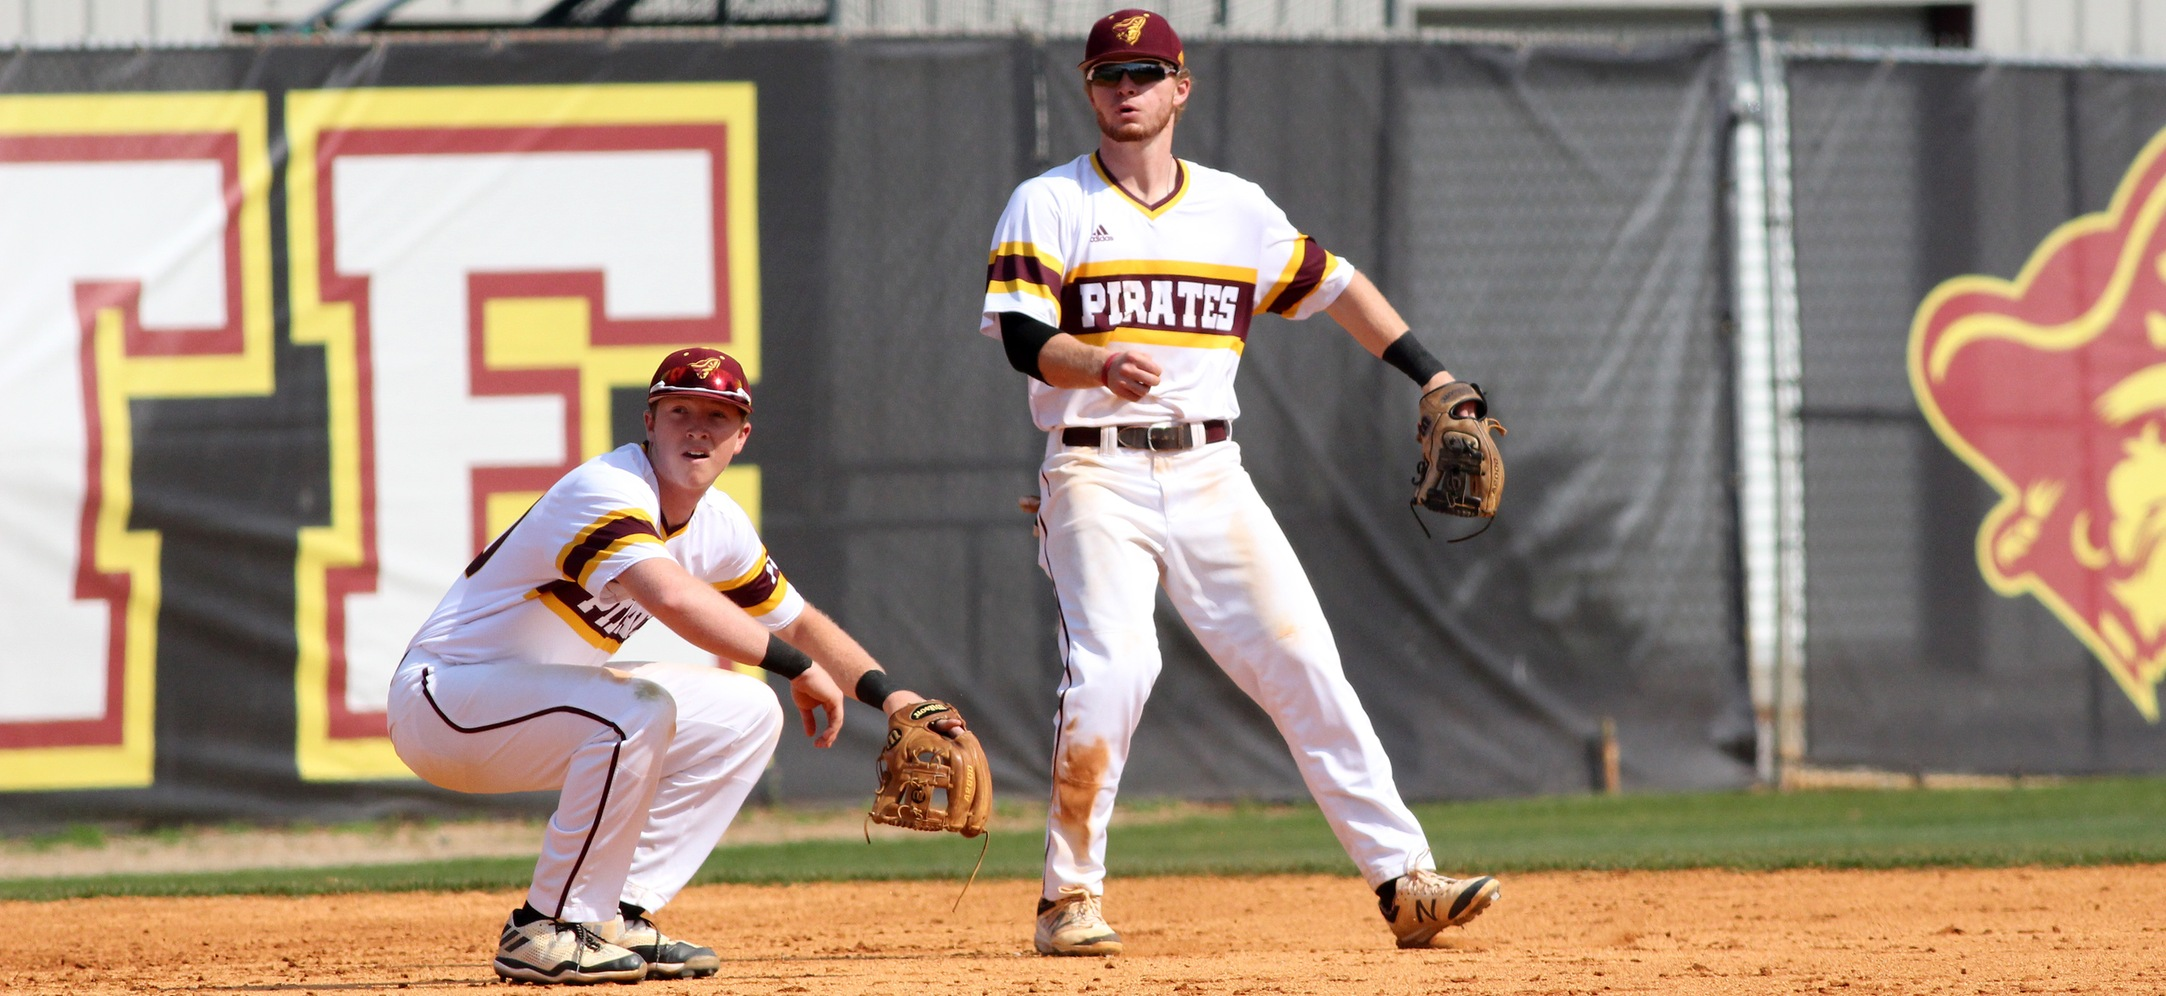 Albany State Wins 13-10 13-Inning Contest Over Armstrong State Baseball